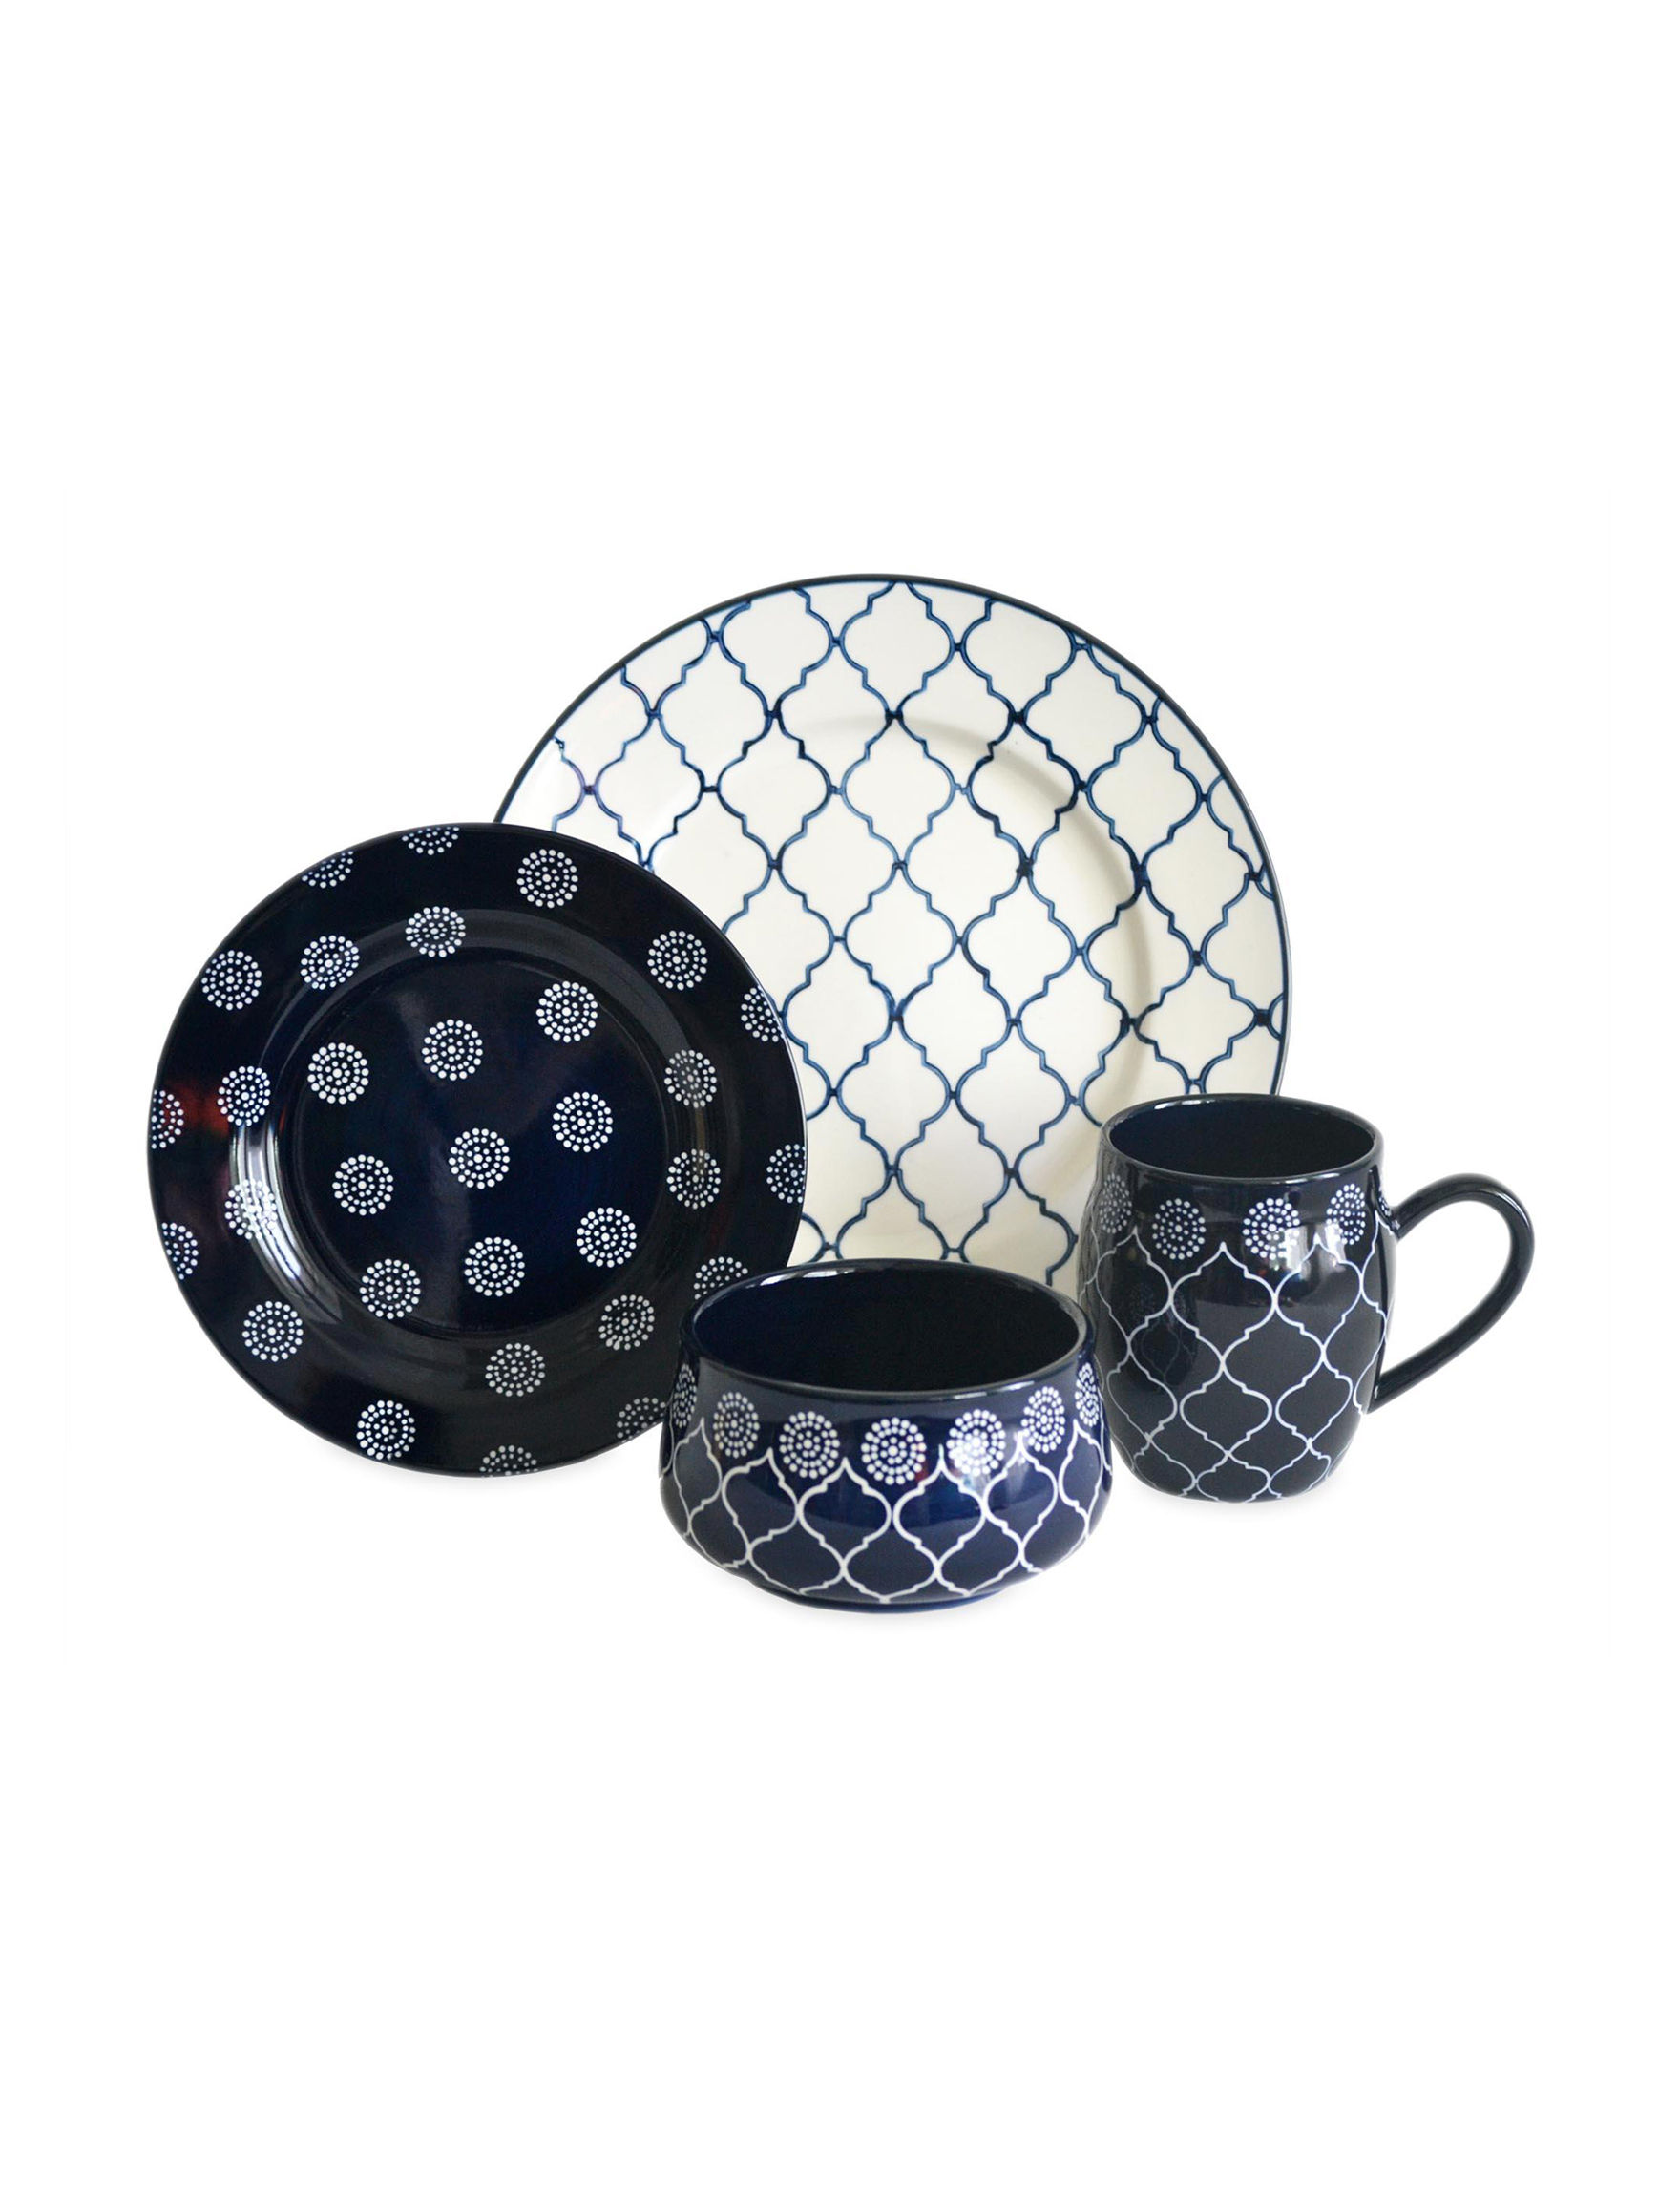 Baum Bros Imports 16-pc. Moroccan Dinnerware Set | Stage Stores